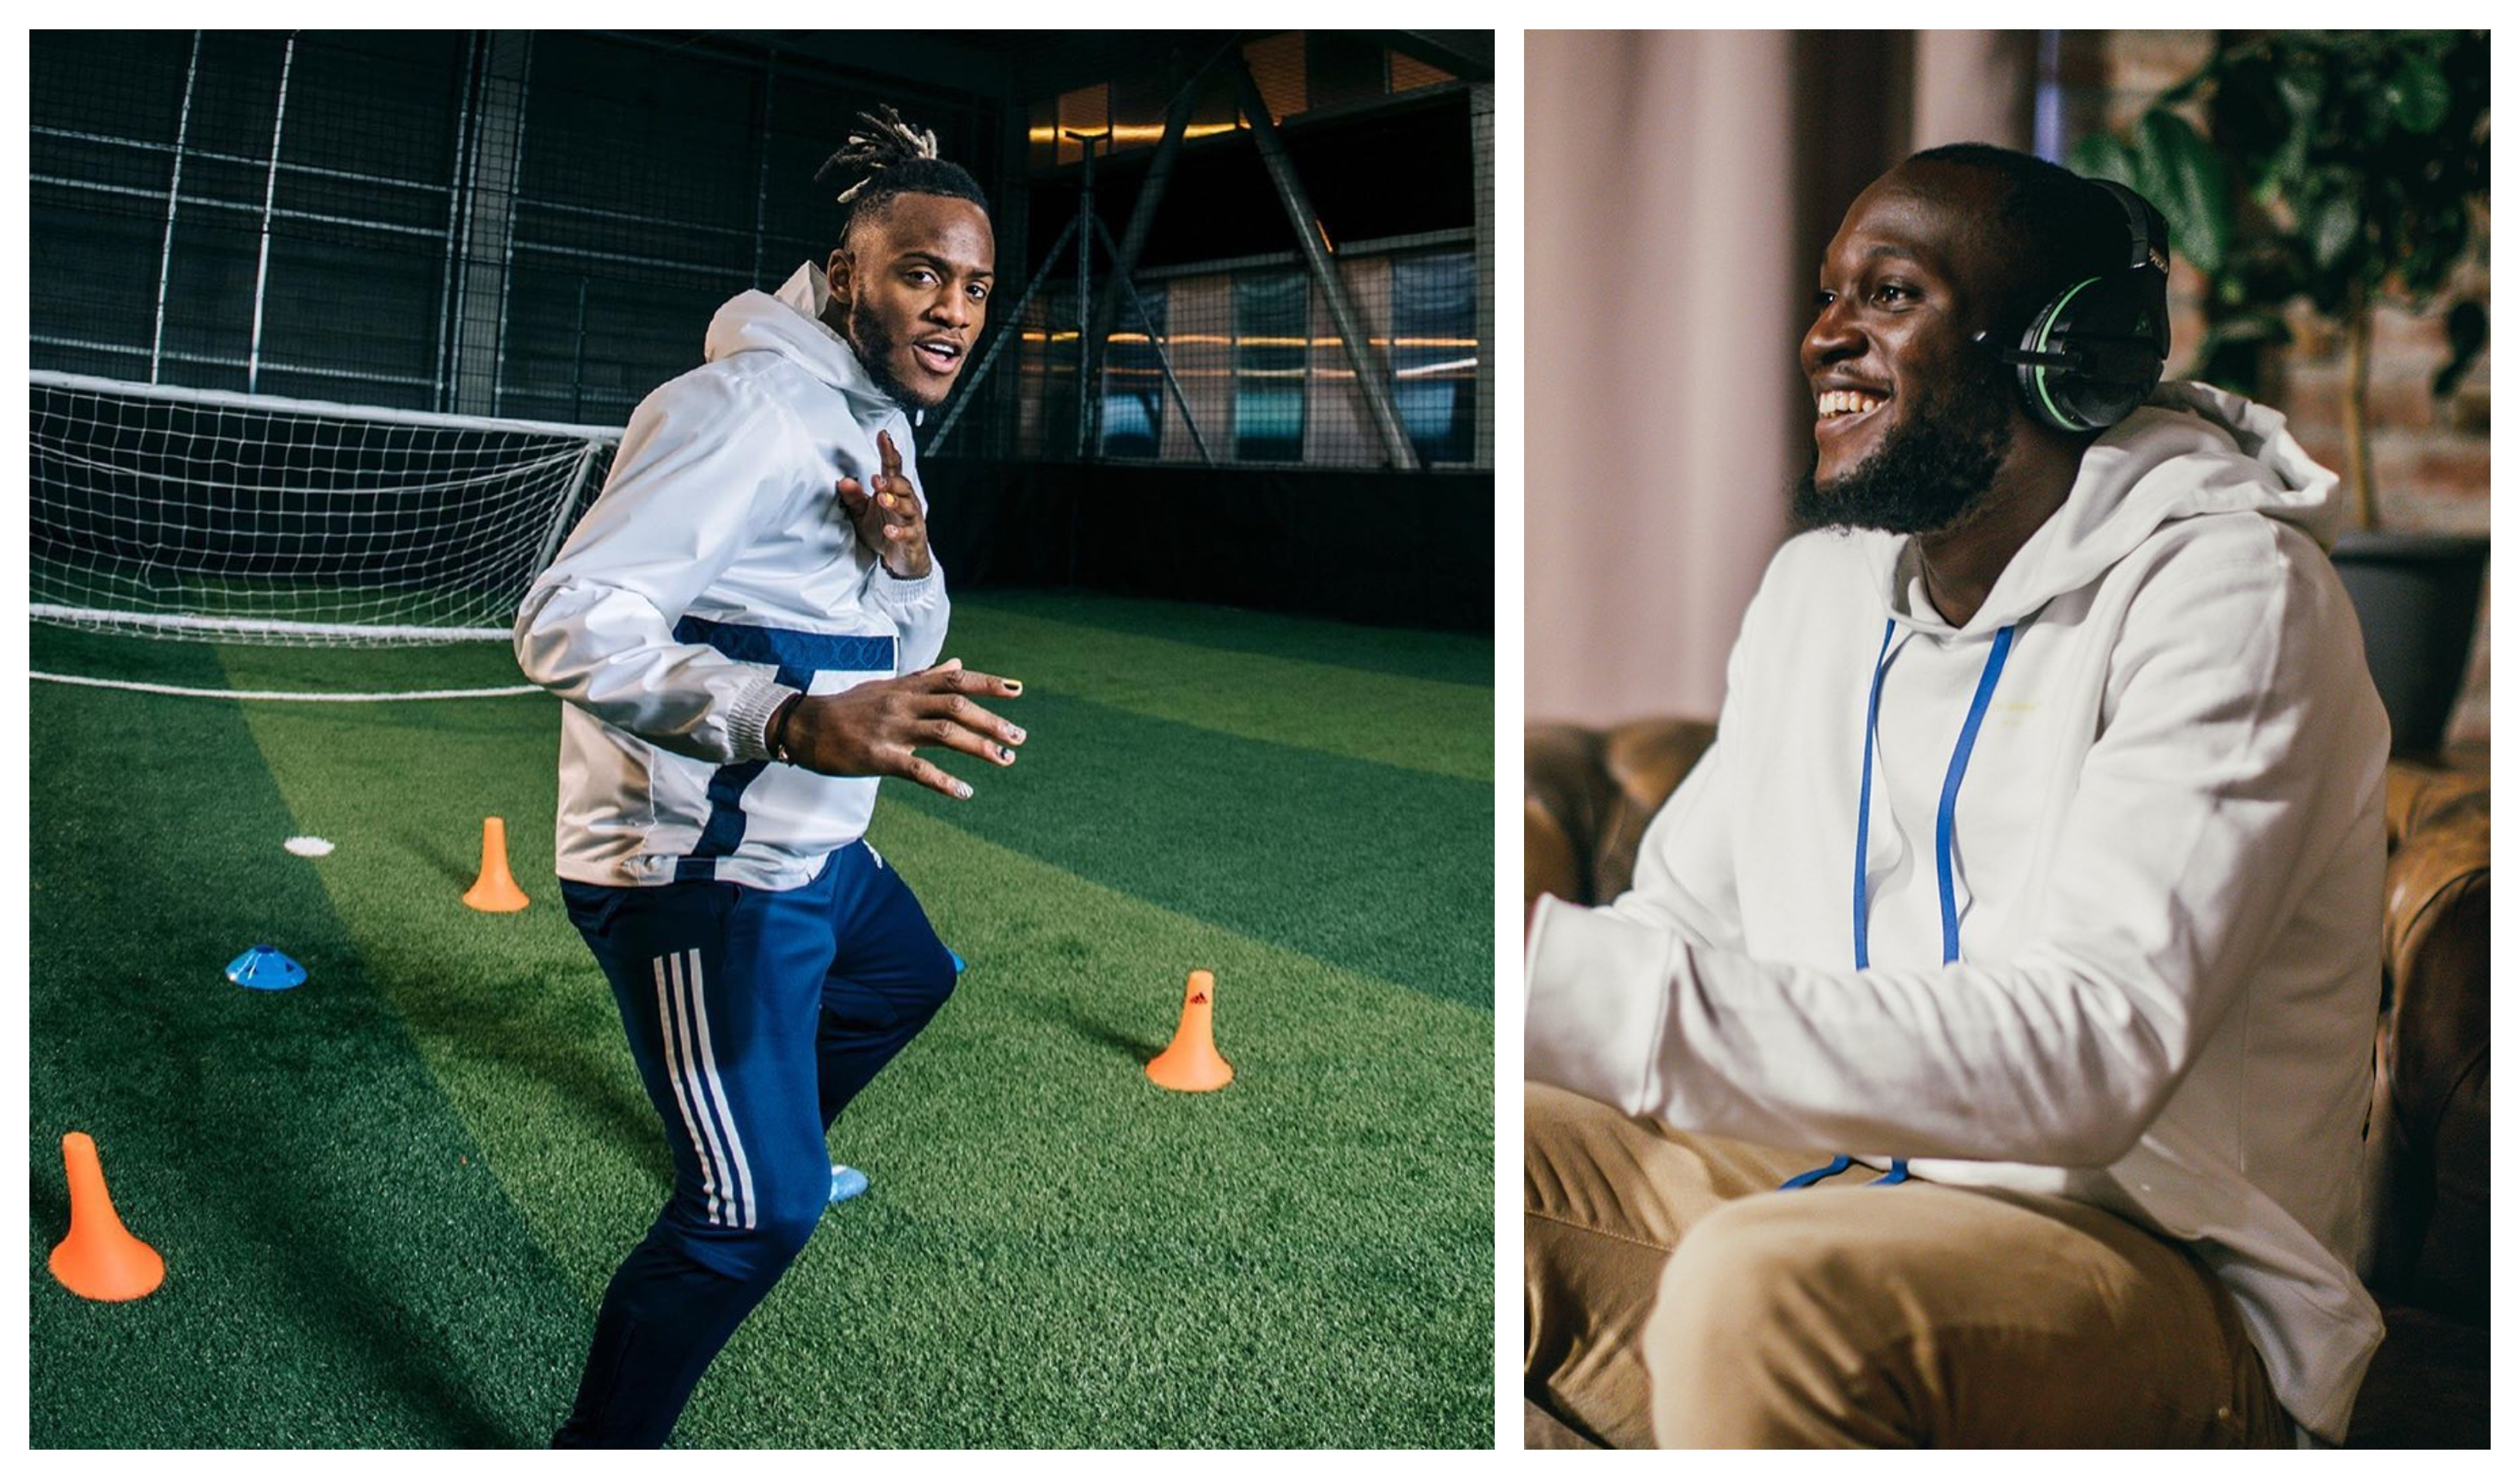 Lukaku: Why prefer Michy to Romelu? How is that possible?